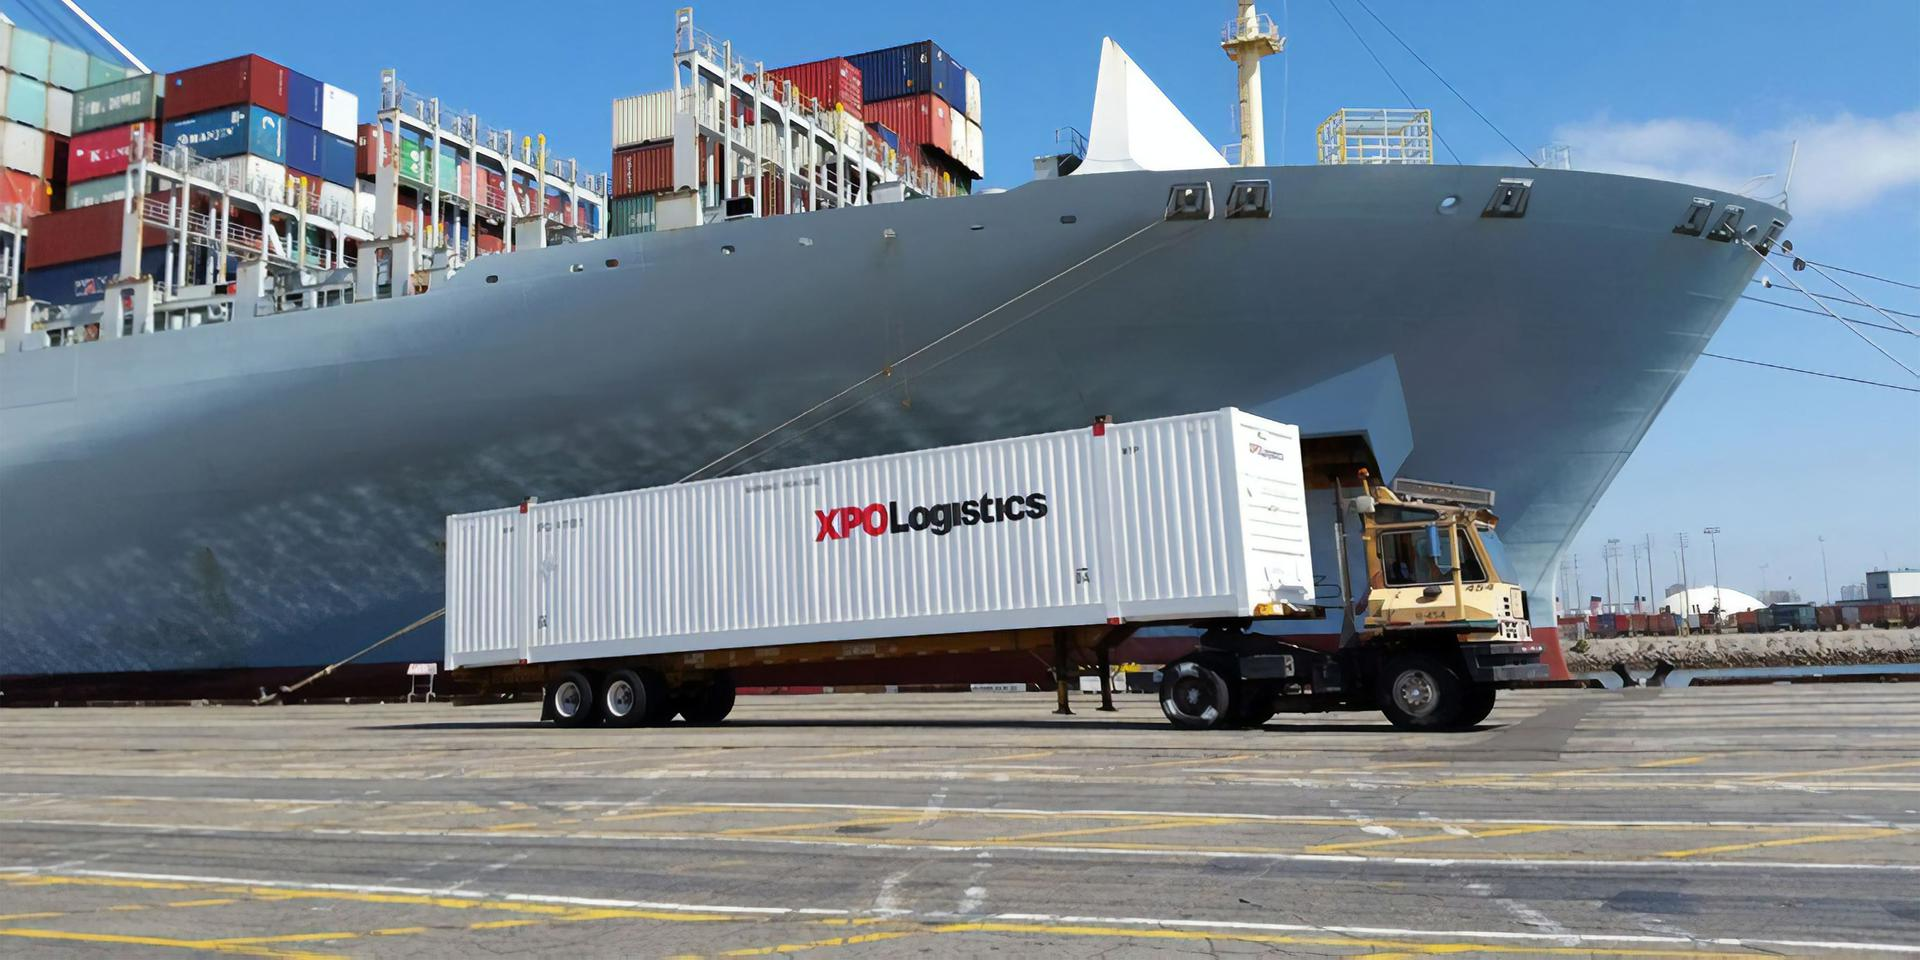 XPO container on dock